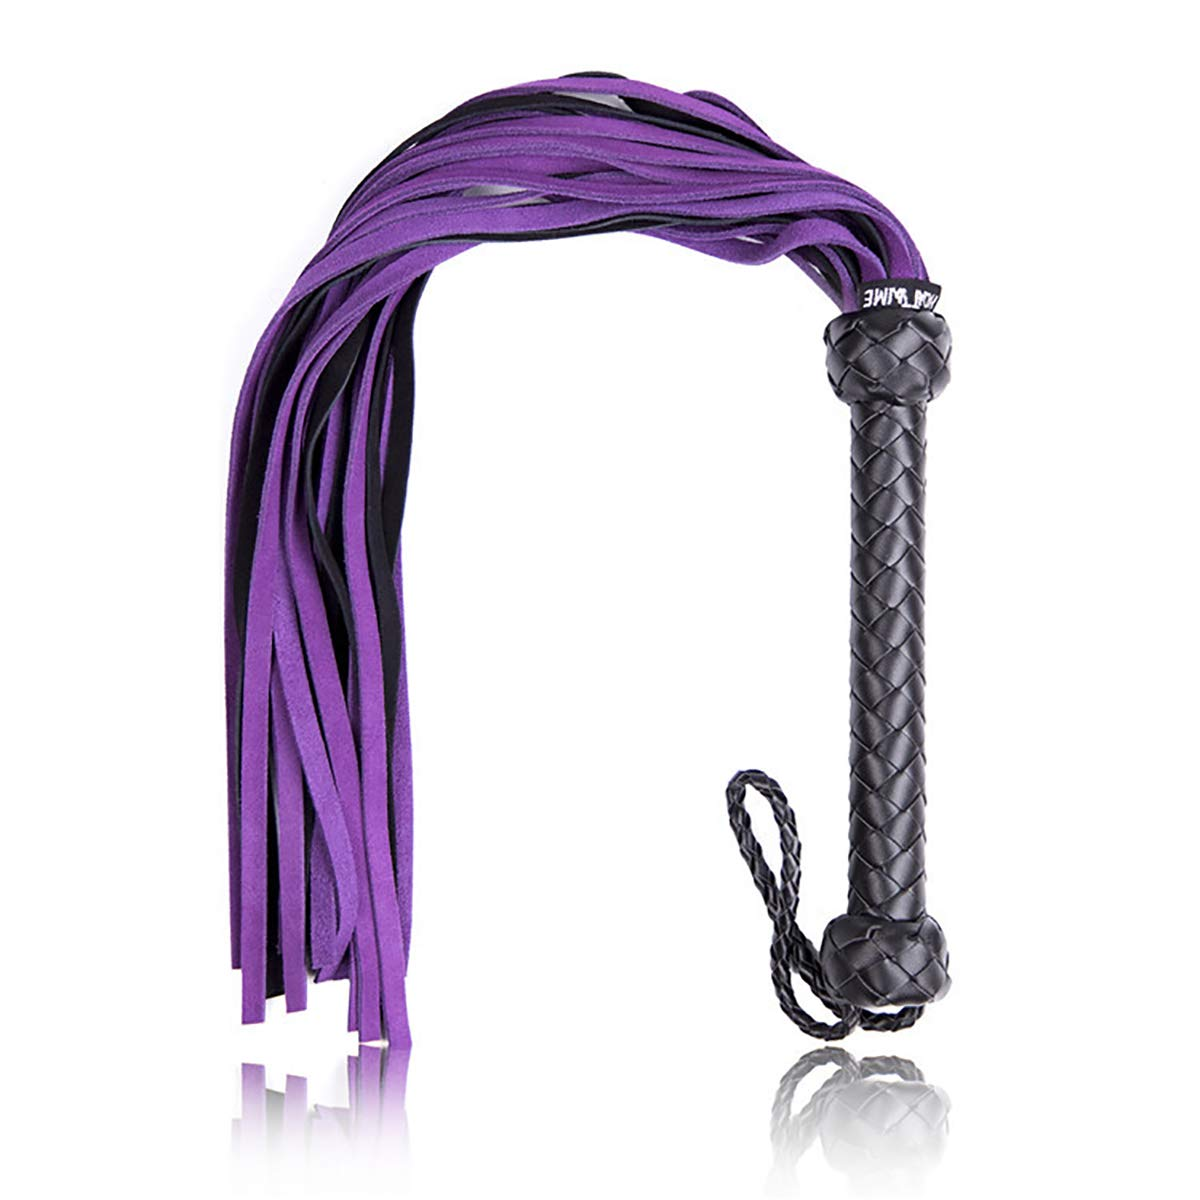 FIZZENN BDSM Premium Leather Flogger Whip with Braided Handle Grip and Wrist Strap for Cosplay Kit, Purple and Black by FIZZENN